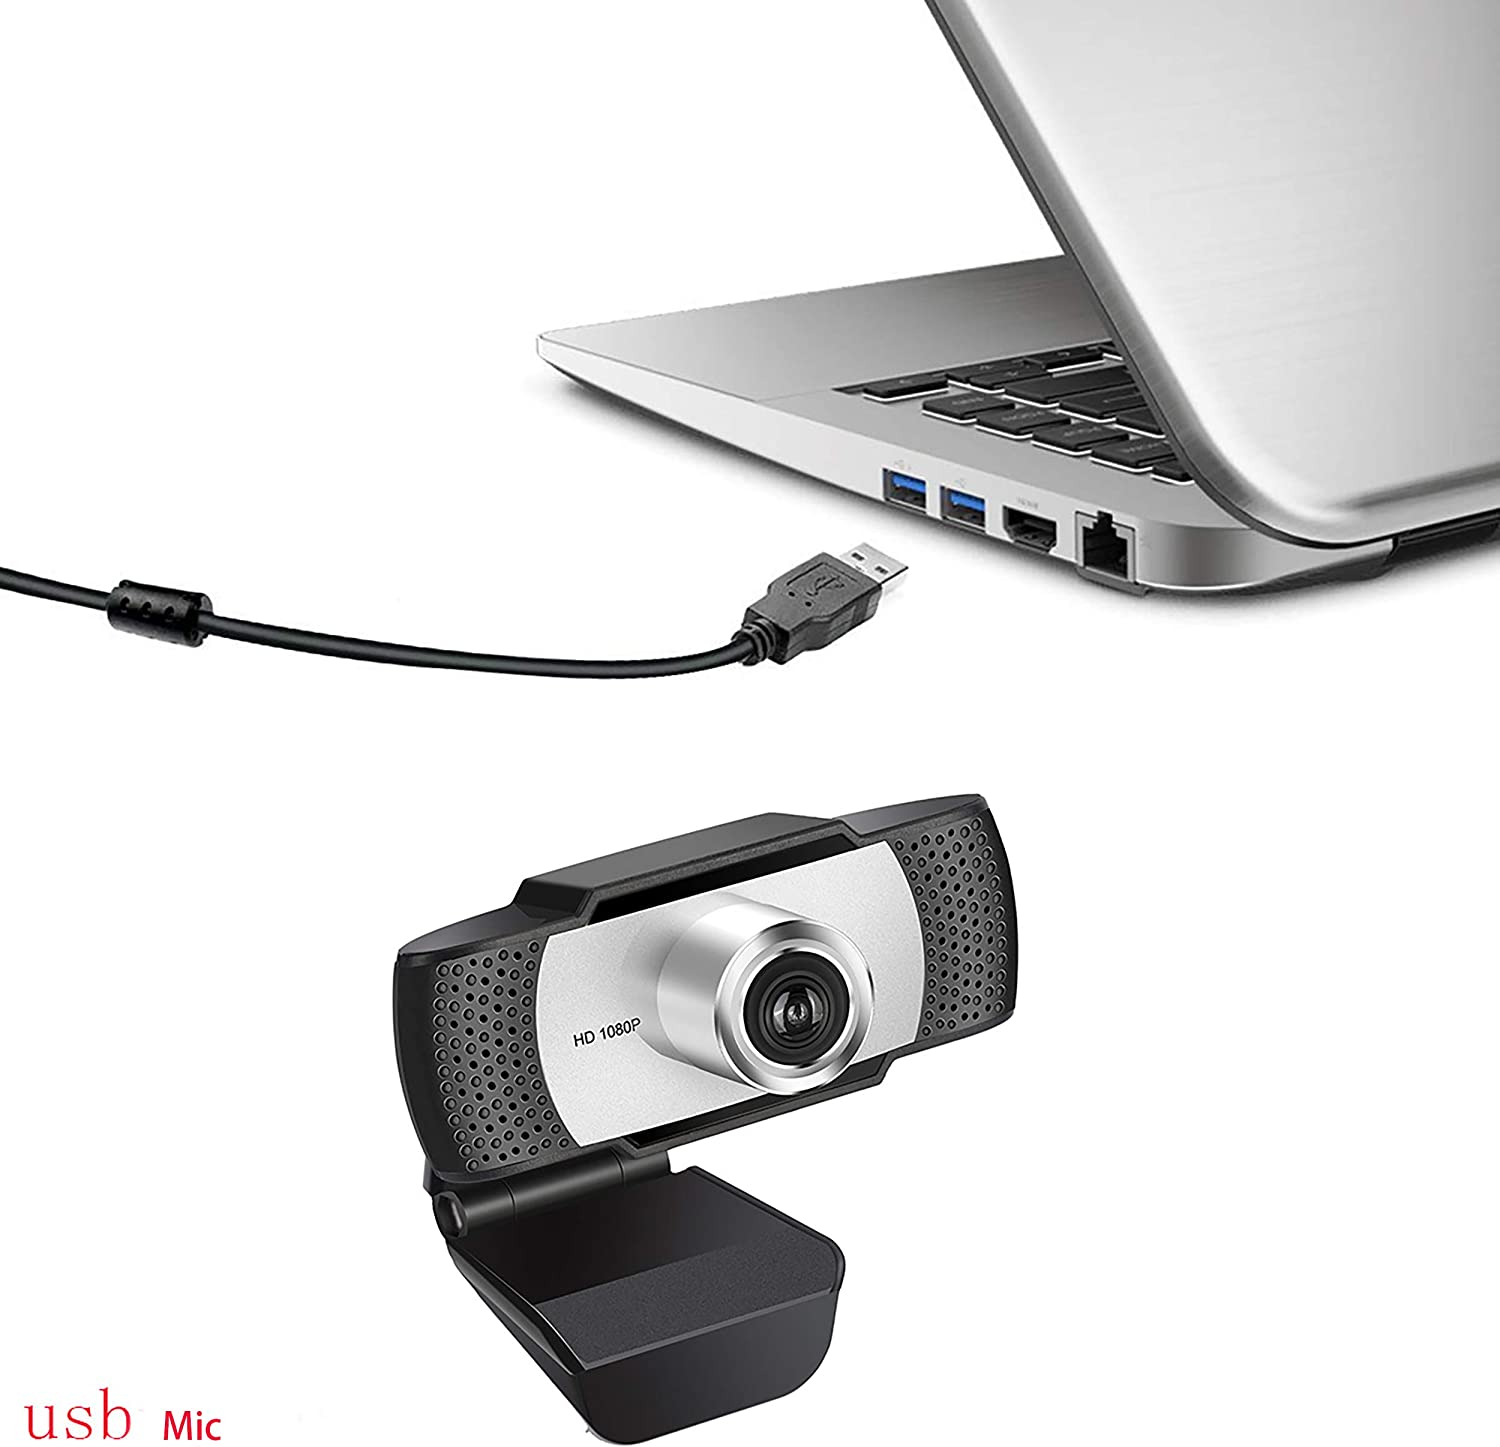 USB Computer Camera for Mac Xbox YouTube Skype OBS Webcam for Gaming Conferencing Laptop or Desktop Webcam Free-Driver Installation Fast Autofocus Black 1080P HD Webcam with Dual Microphones